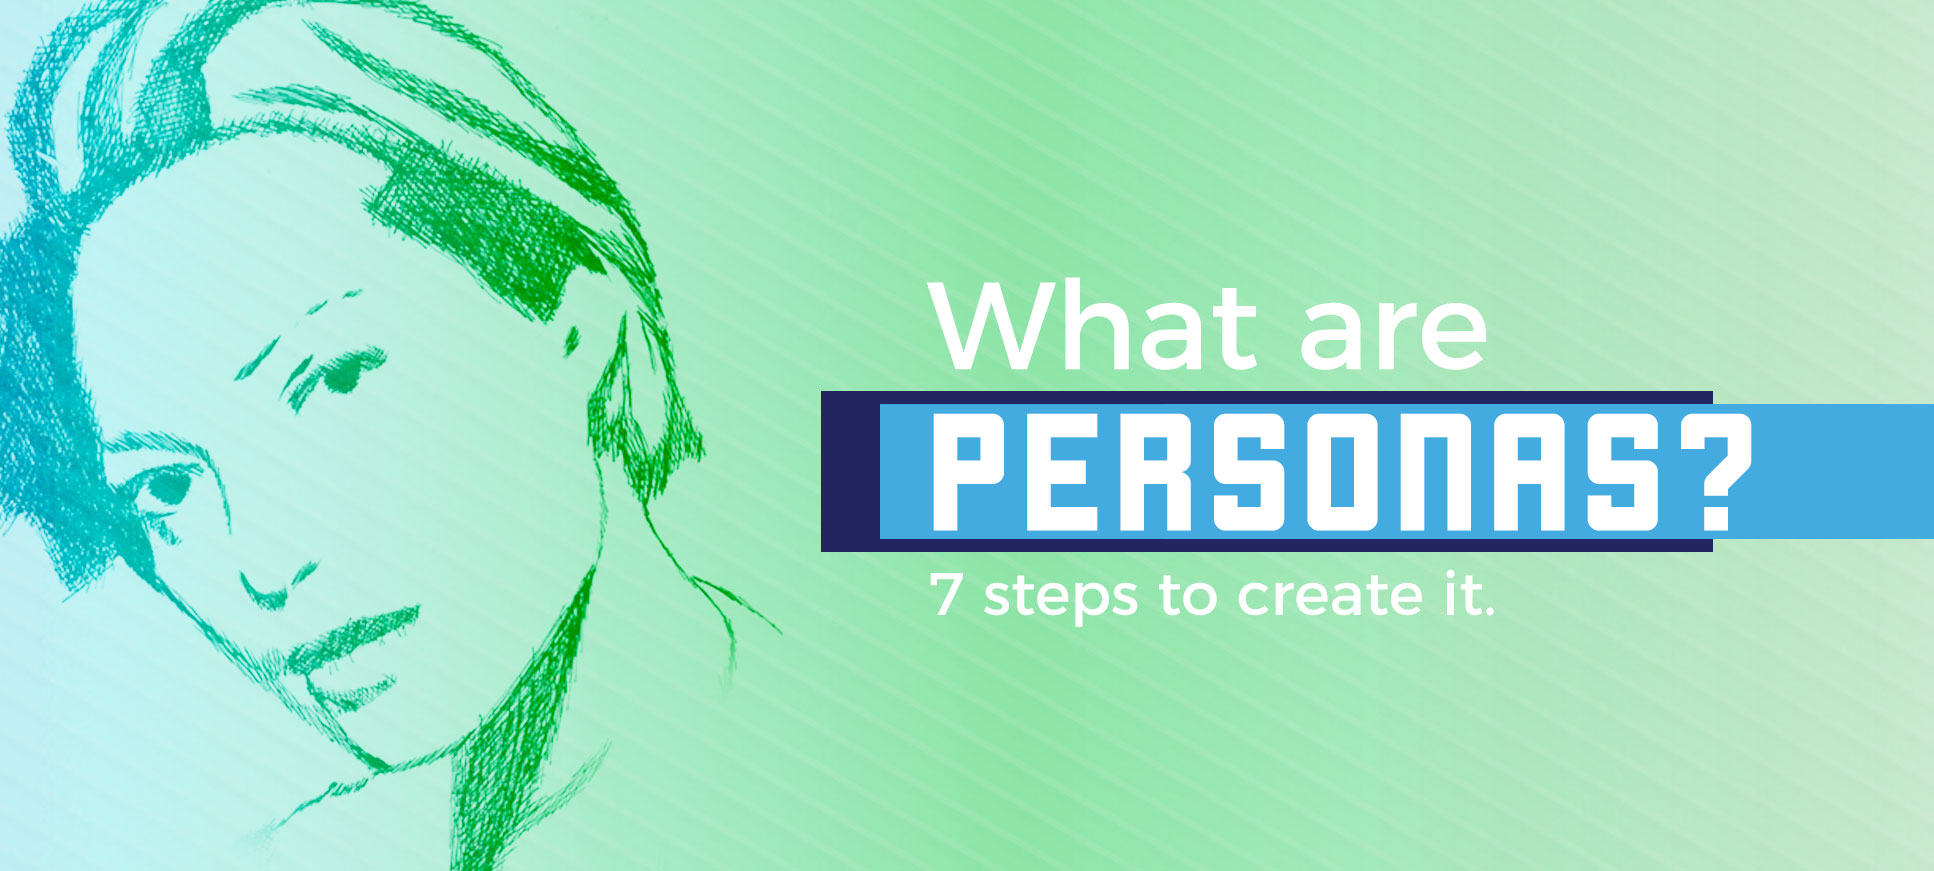 what are personas 7 tips to create it